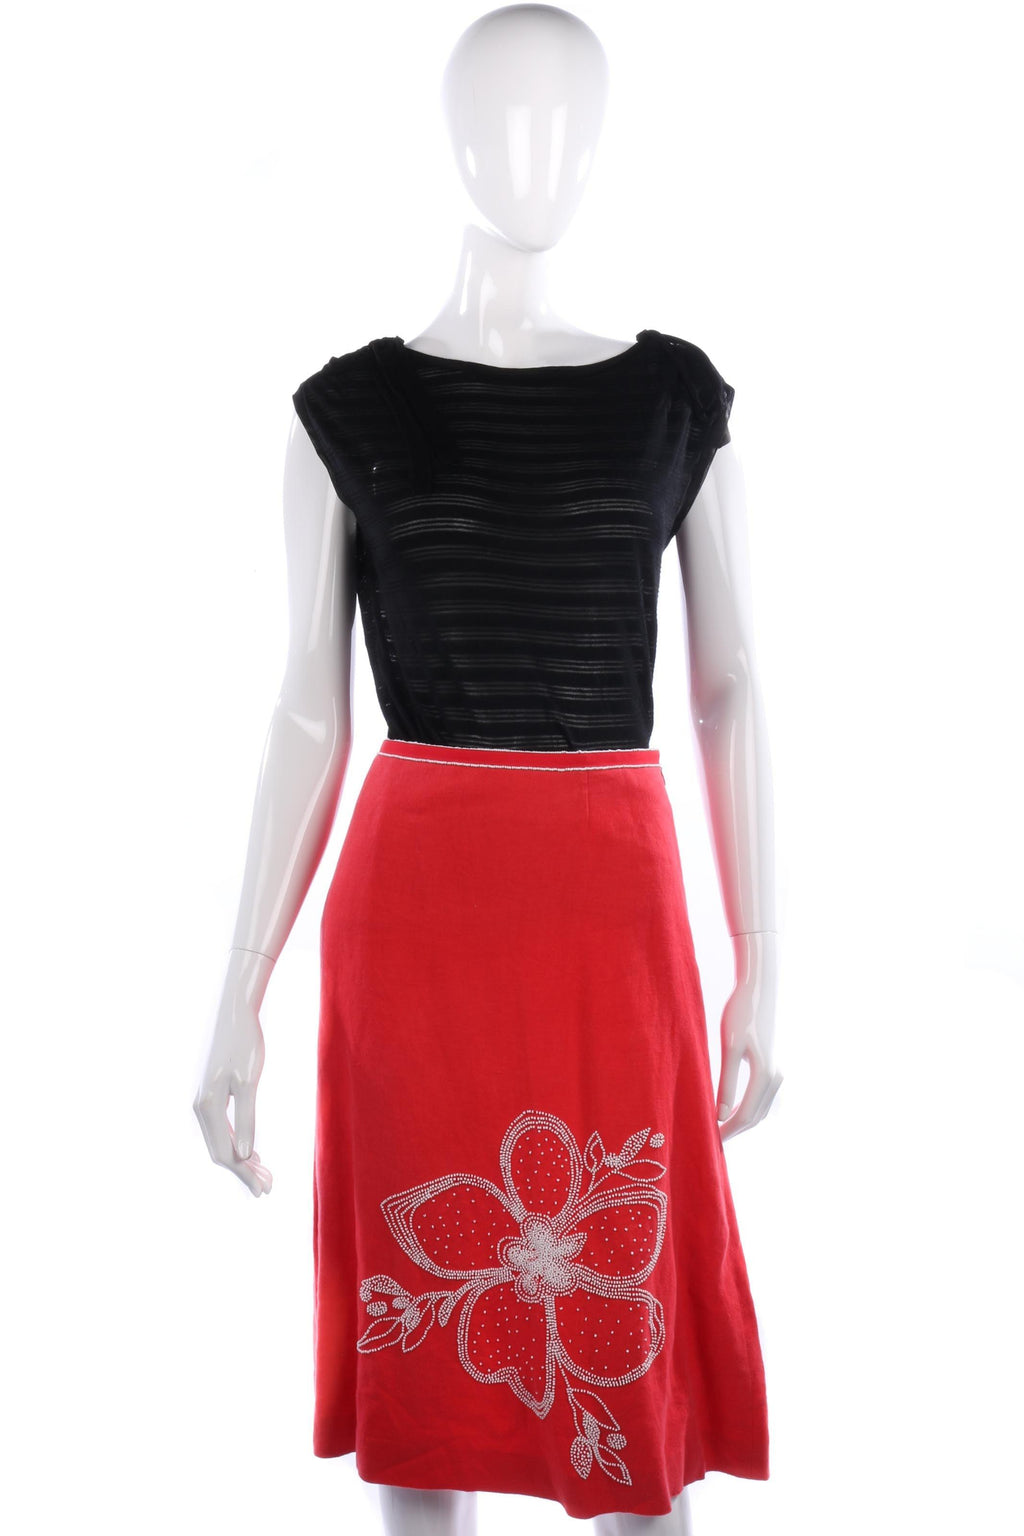 Coast Red Linen Skirt with White Bead Embroiderey Detail Size 12